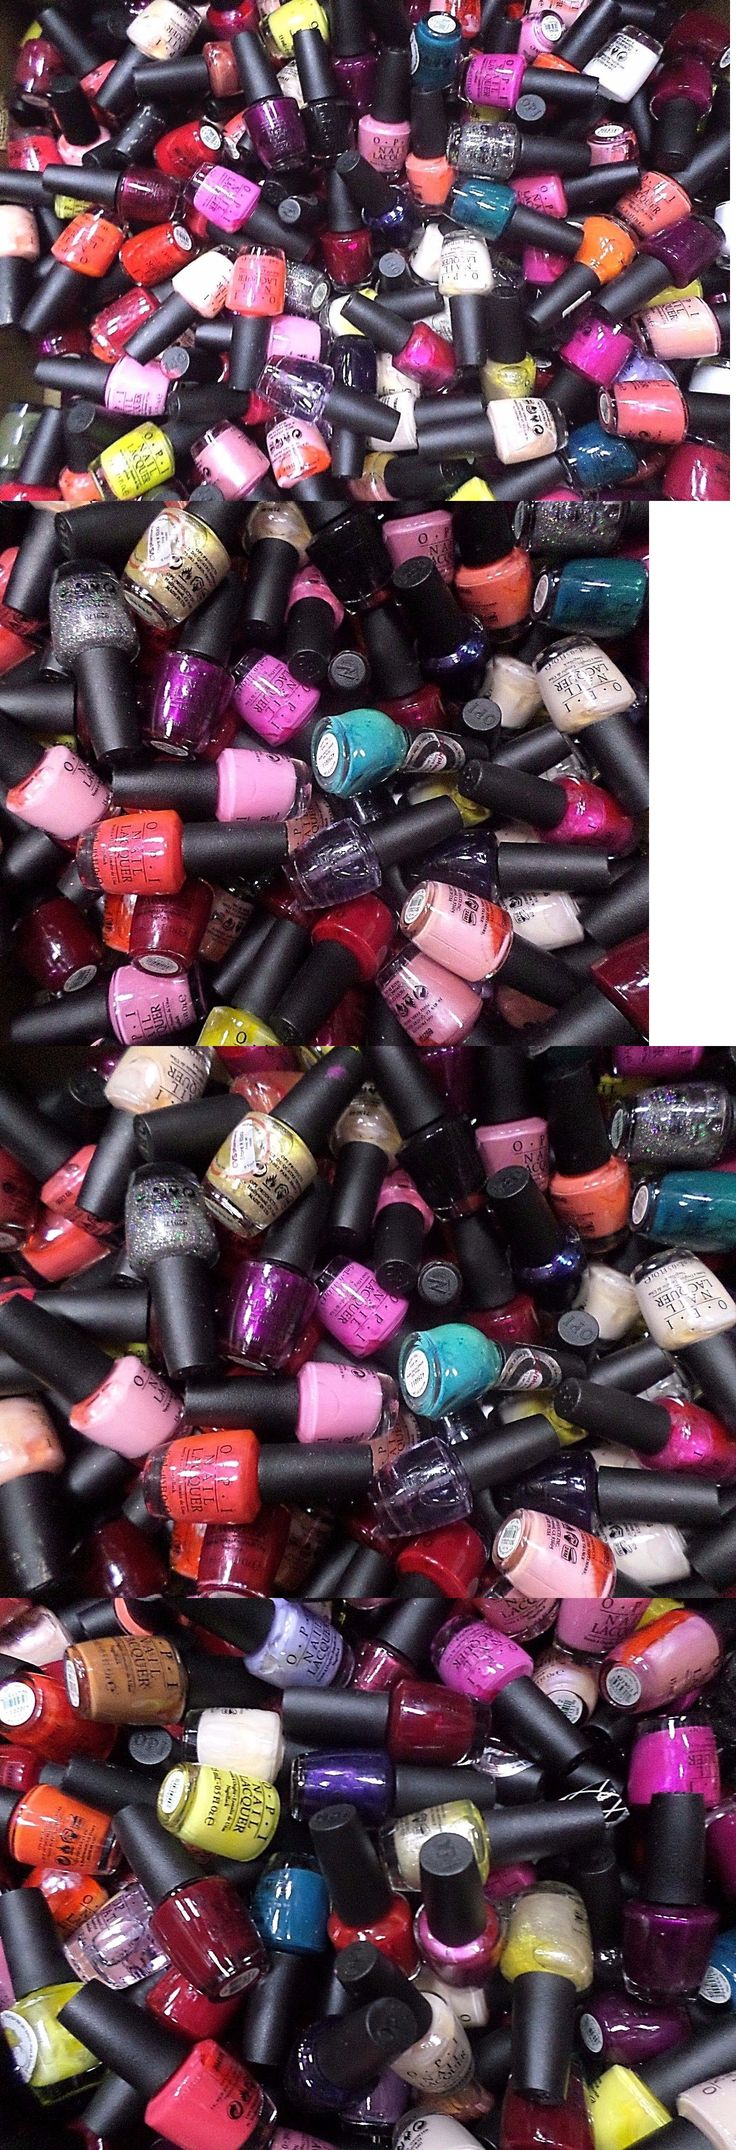 Nail Polish: Opi Nail Polish Lot Of 100 Assorted Colors Wholesale Nail Lacquer 0.5 Oz Each -> BUY IT NOW ONLY: $229.99 on eBay!